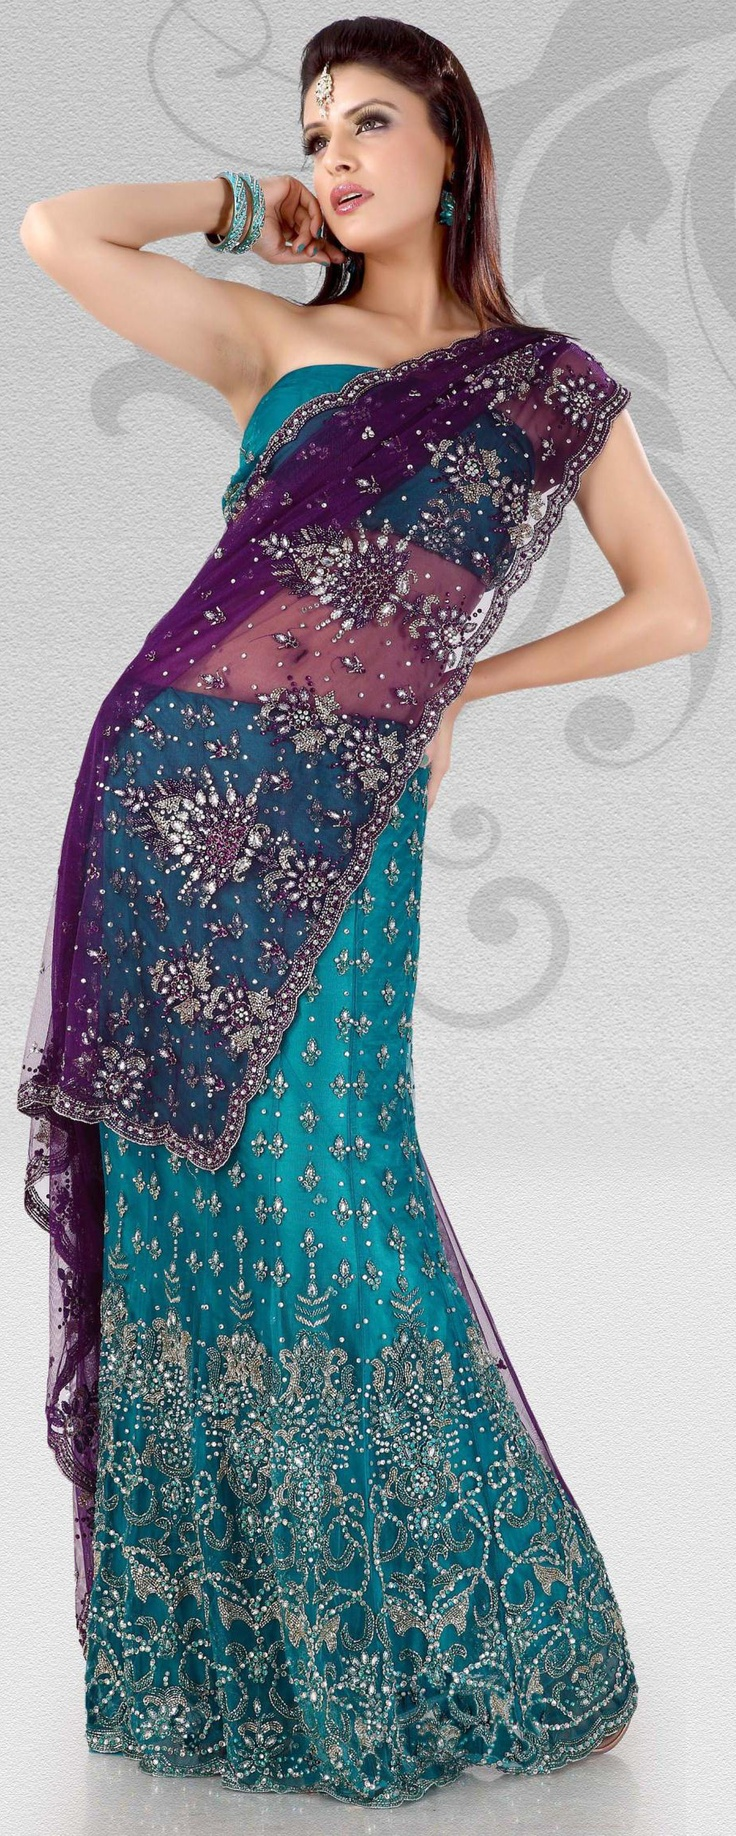 best clothes images on pinterest india fashion indian gowns